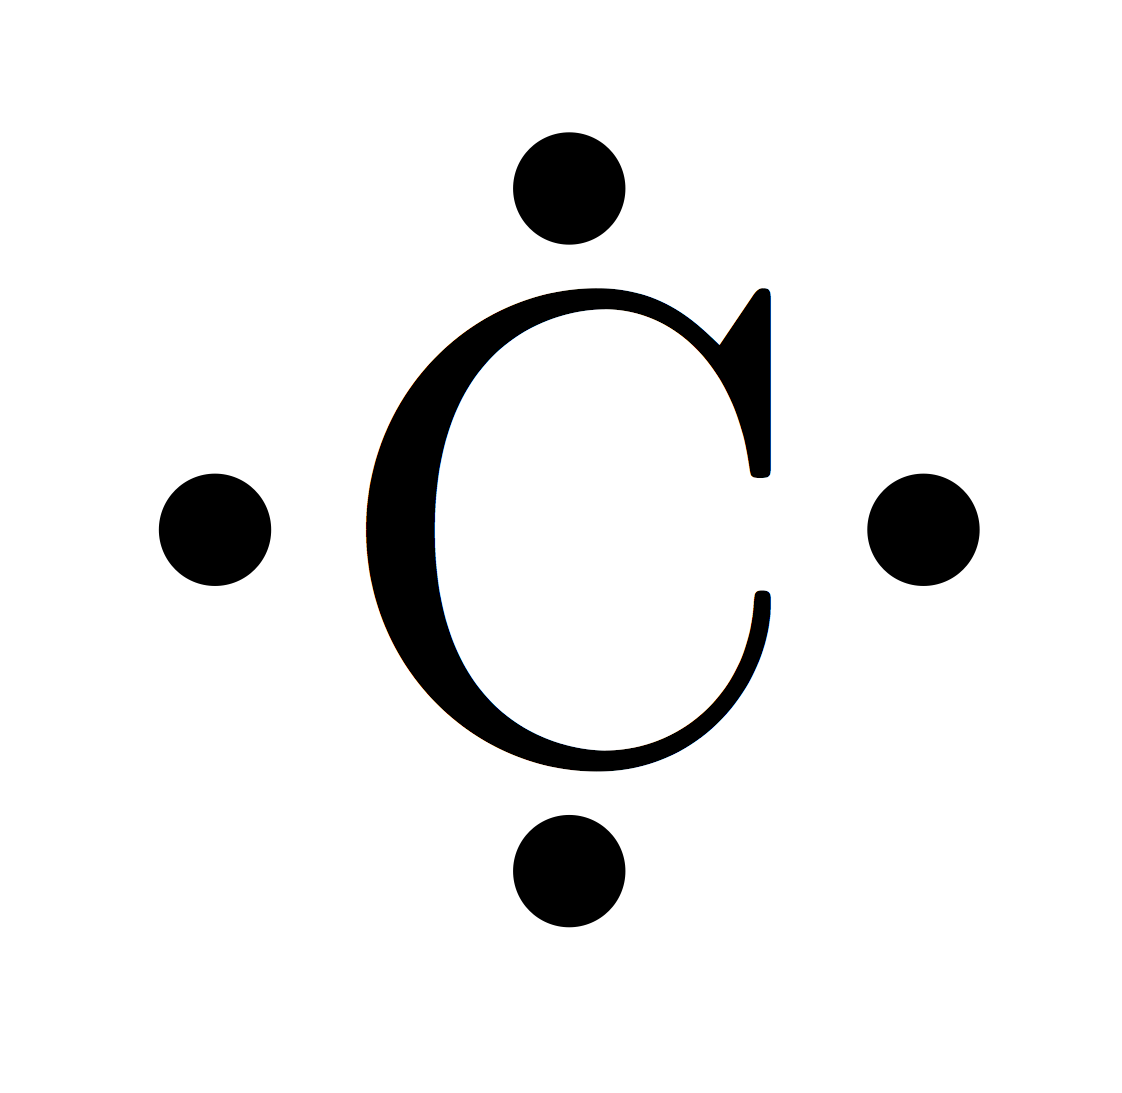 electron dot diagram for carbon file:carbon lewis structure png.png - wikimedia commons